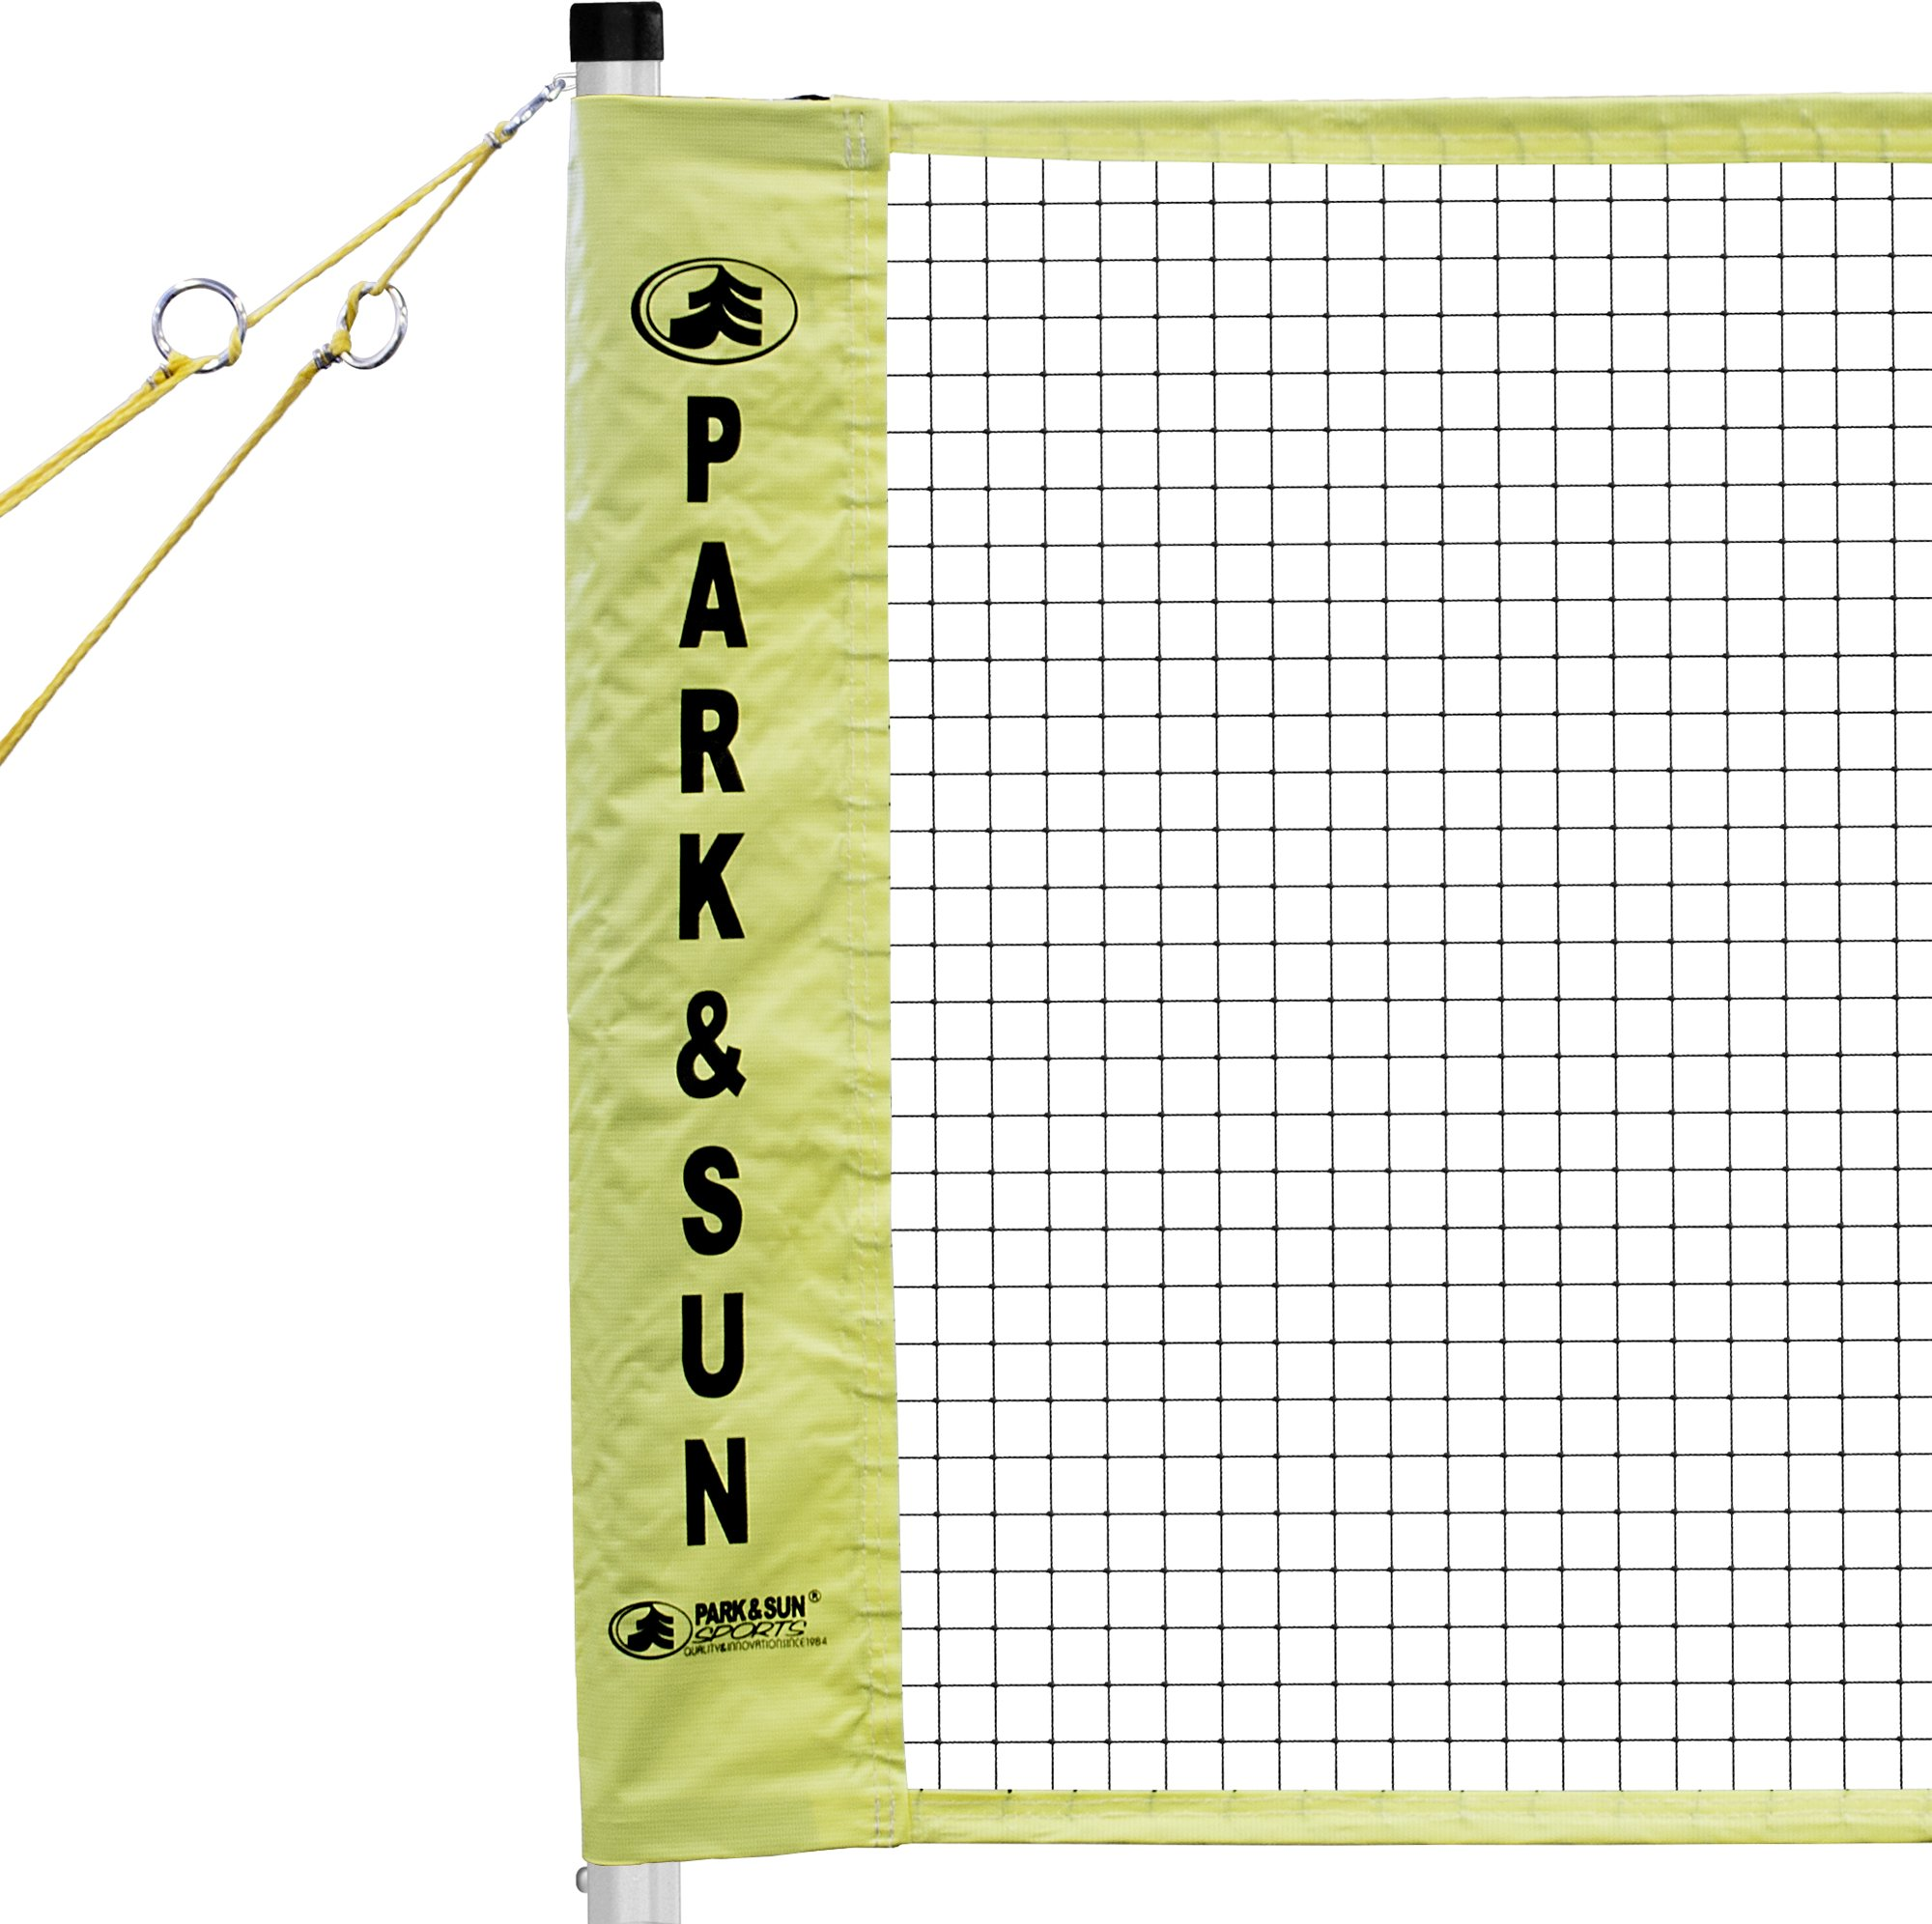 Park & Sun Sports Portable Indoor/Outdoor Badminton Net System with Carrying Bag and Accessories: Tournament Series by Park & Sun Sports (Image #2)